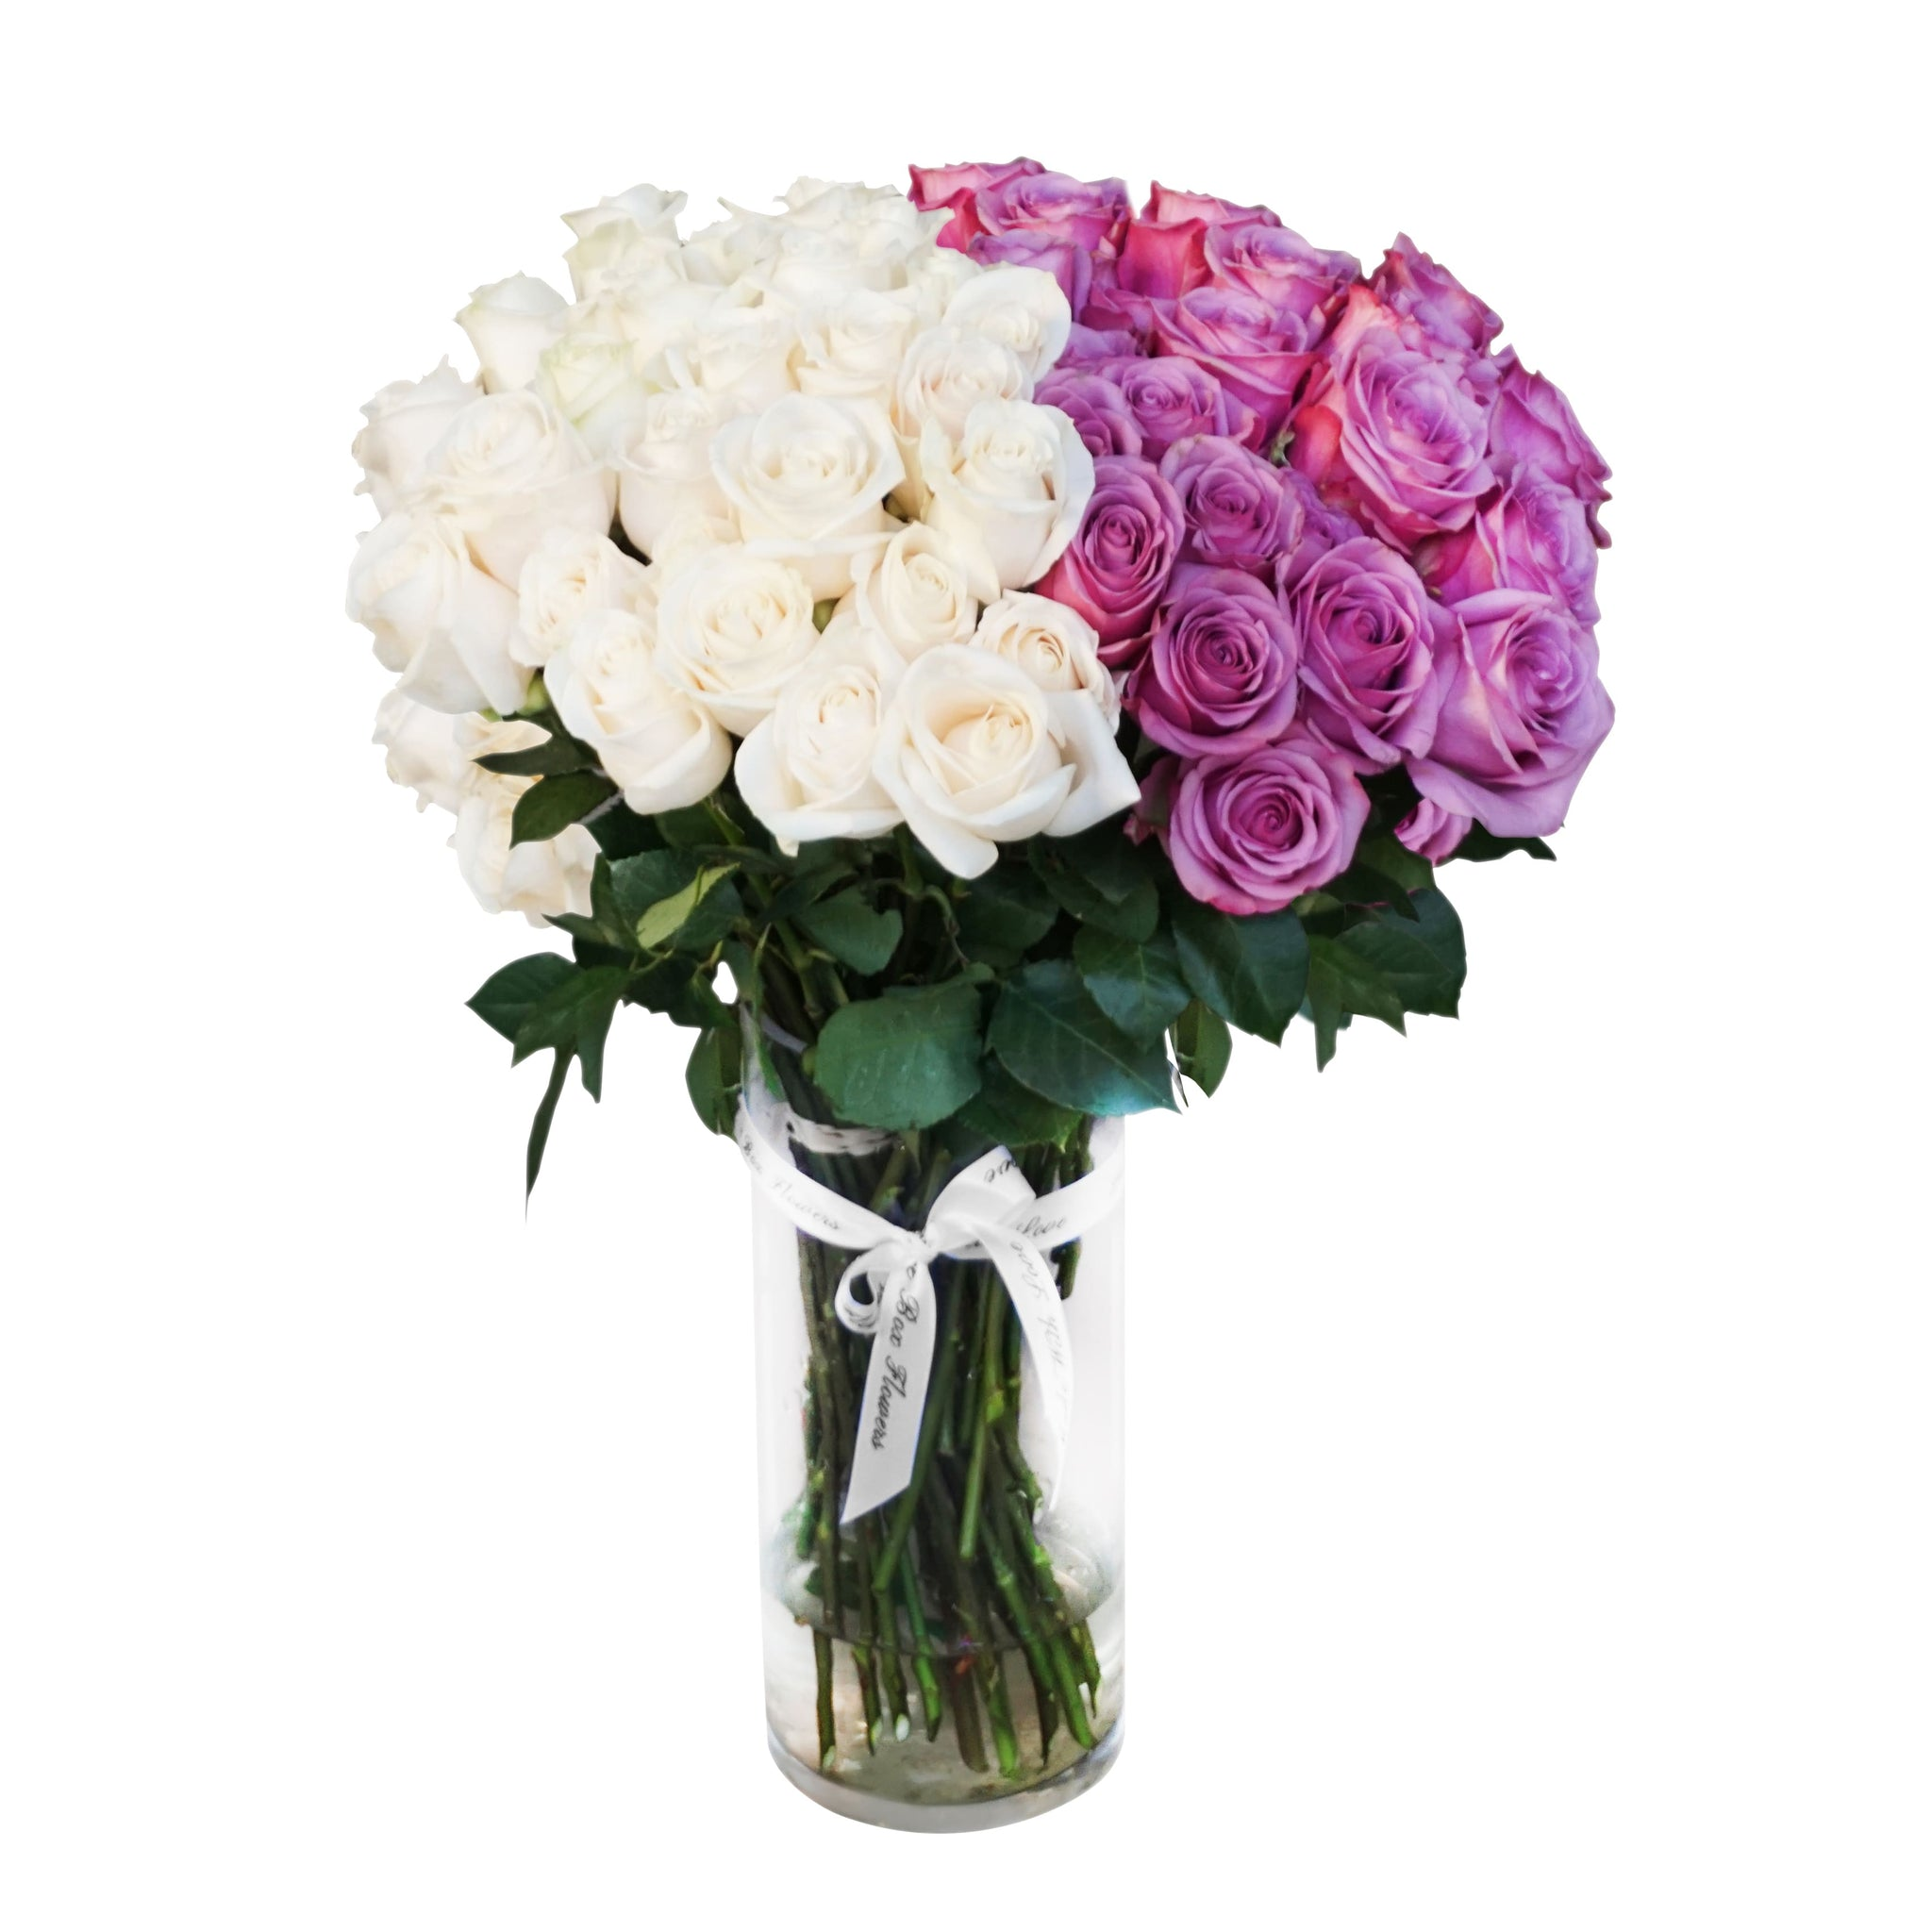 White & Violet Rose Bouquet in Vase